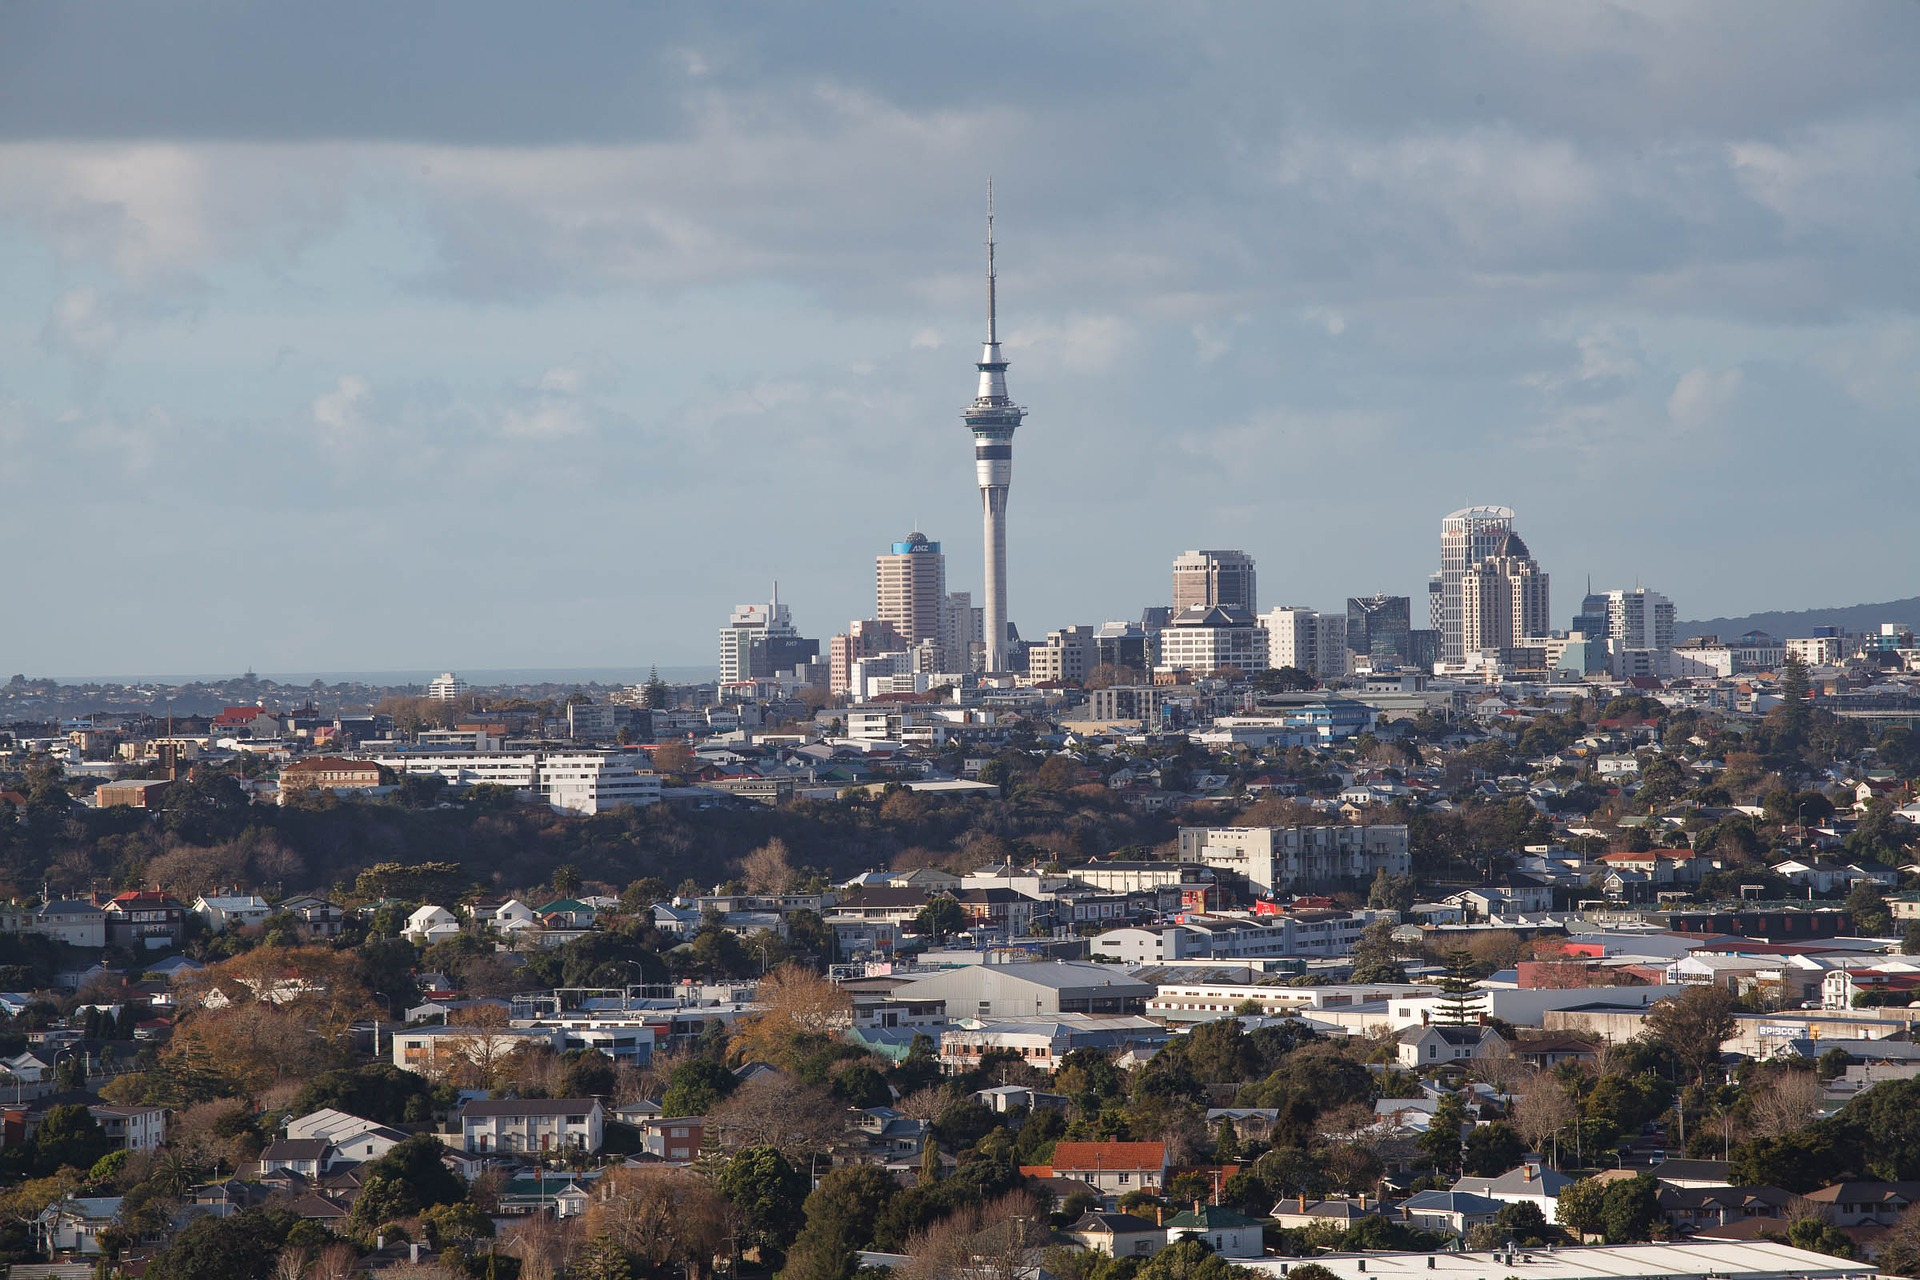 NZ - Auckland. Image by F!!9 - https://pixabay.com/en/users/F119-4928562/